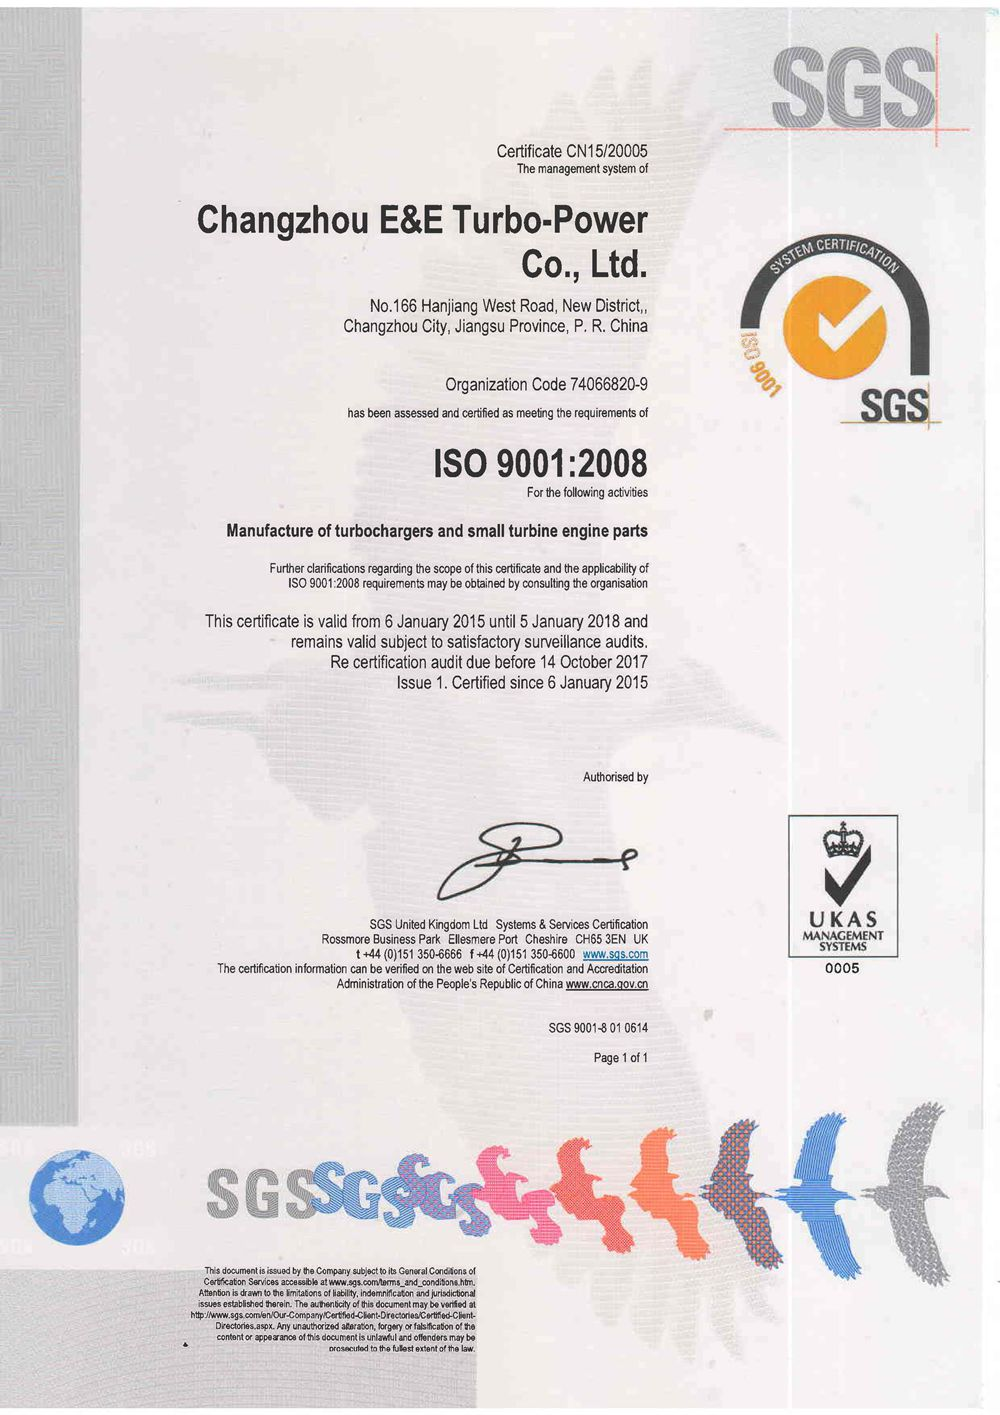 Certificated ISO9001:2008 quality system by SGS